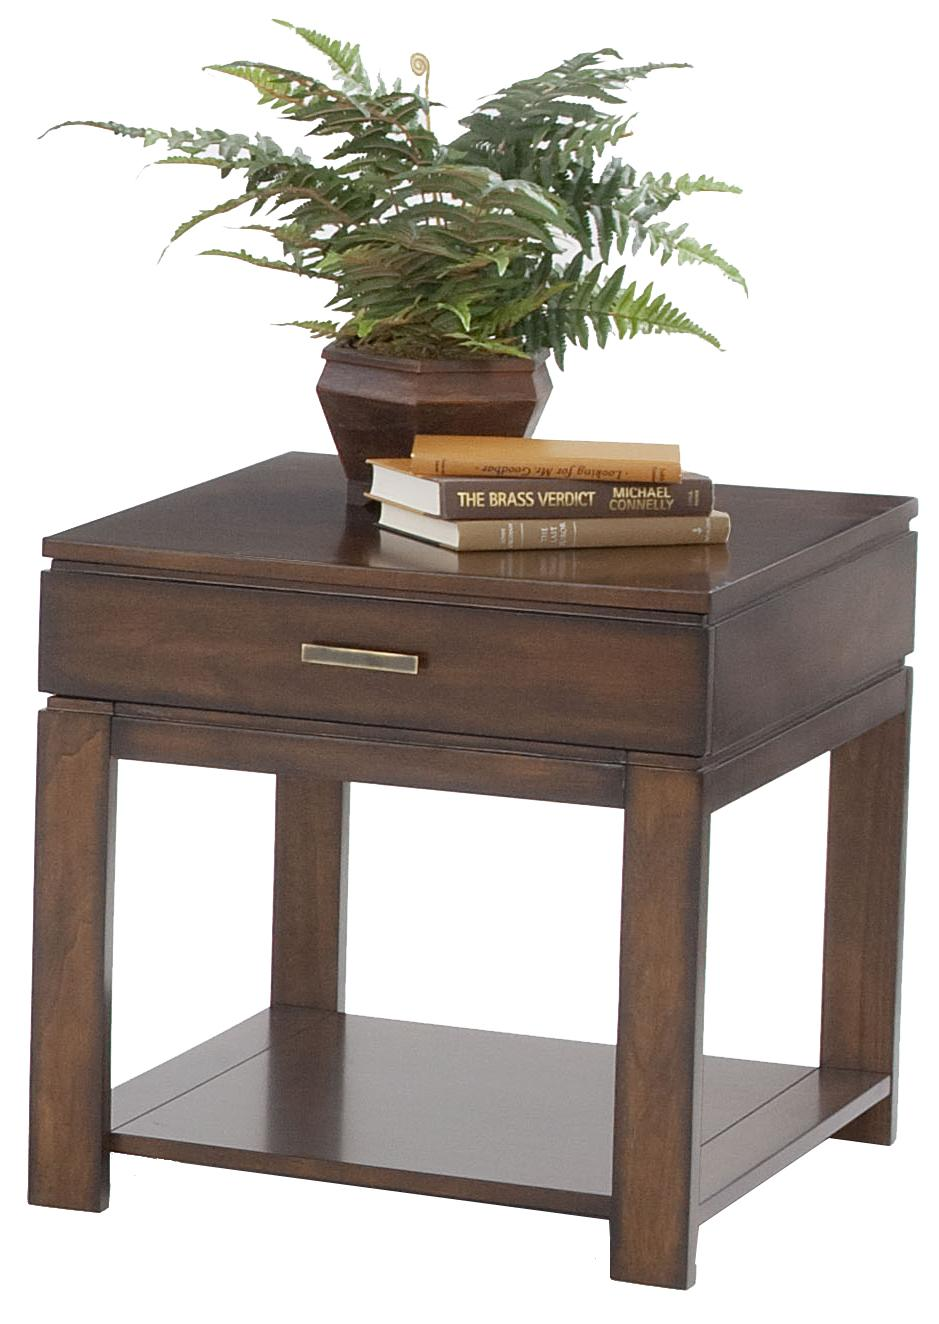 Progressive Furniture Miramar Birch End Table - Item Number: P412-04